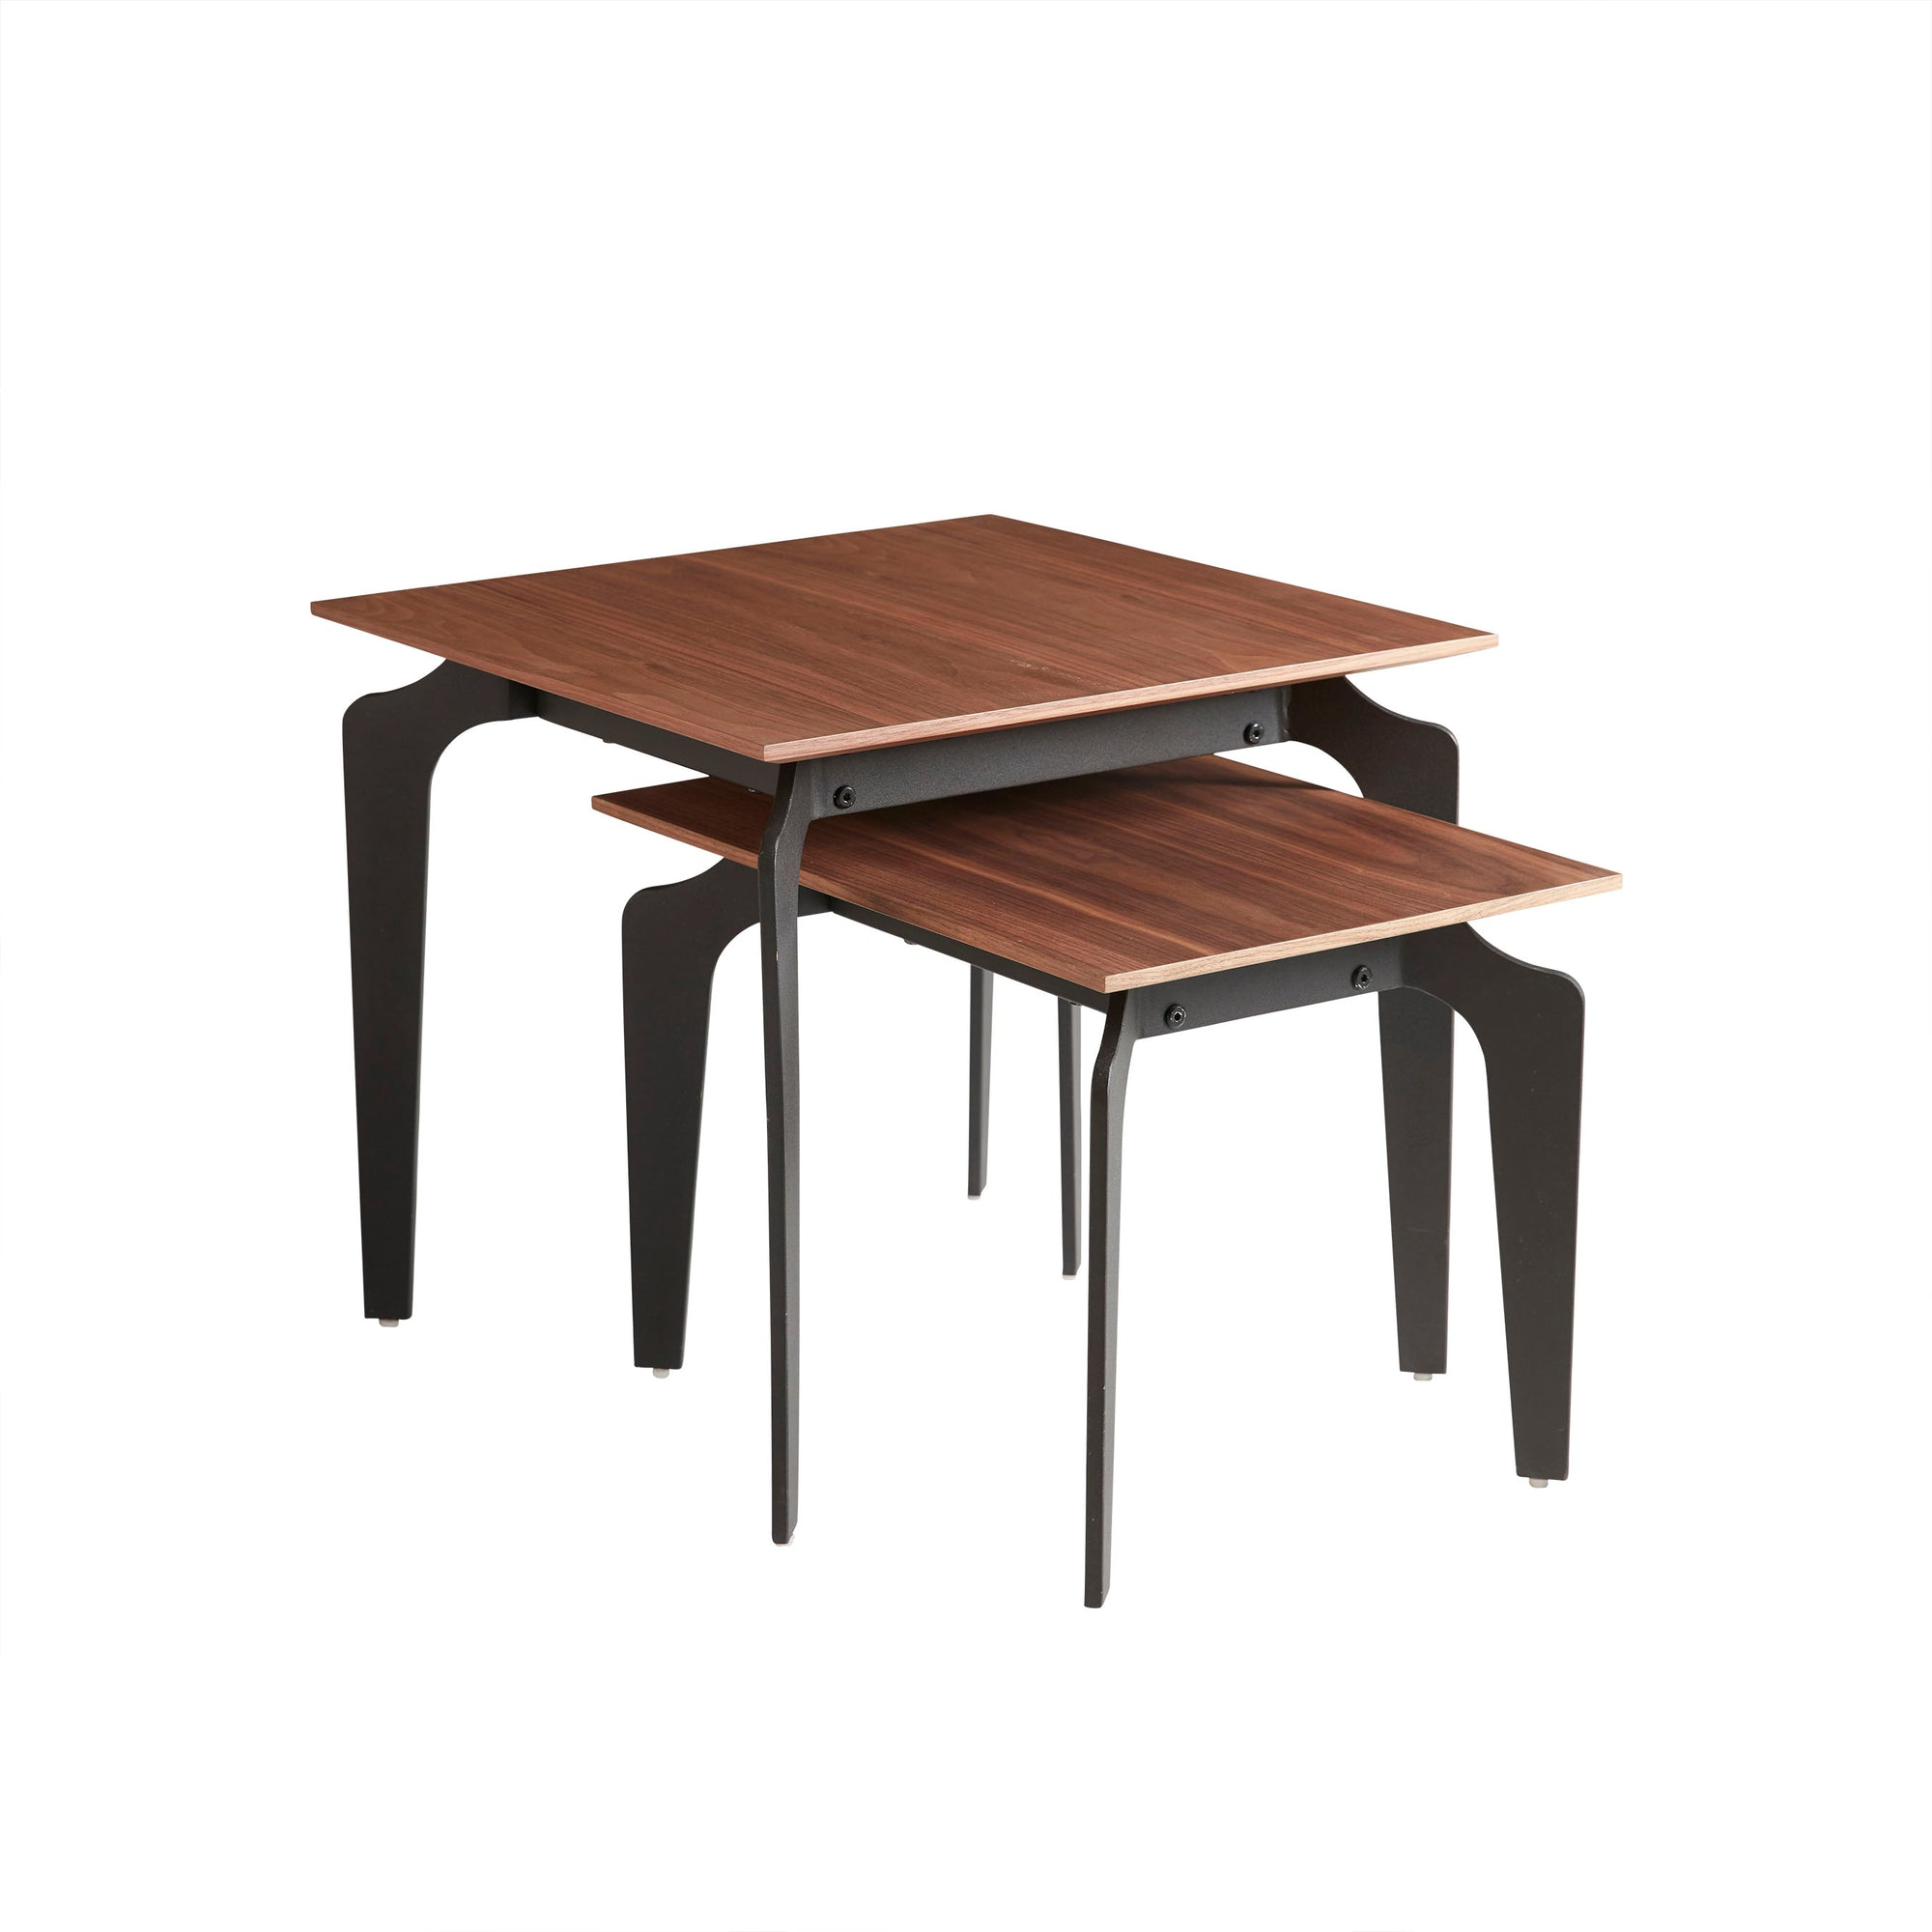 Nouveau Select-Bridgeton Nesting Table-Nesting Tables-MODTEMPO